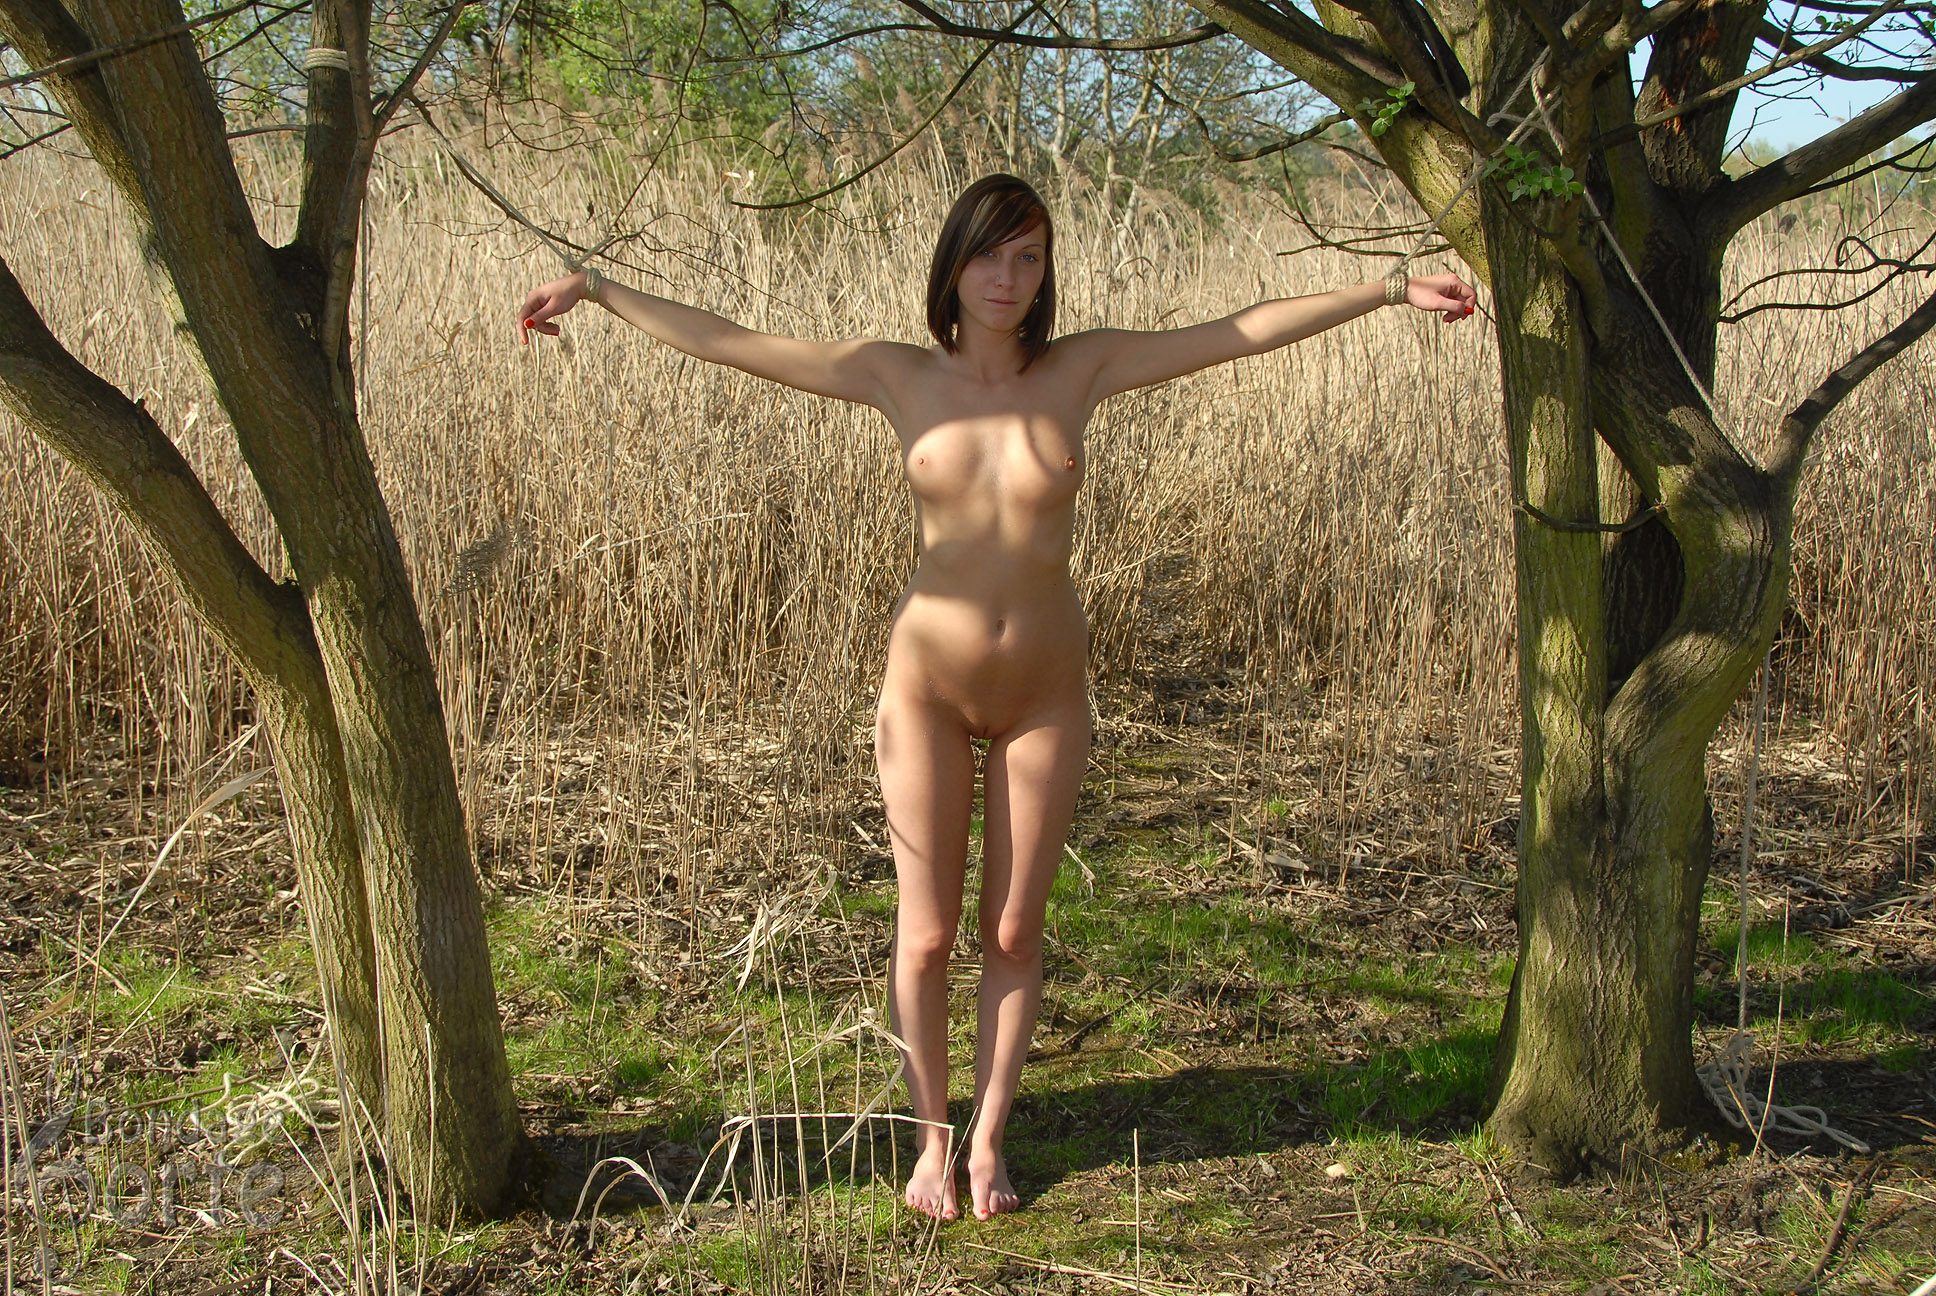 Forest mans nudes girls hd photos softcore images